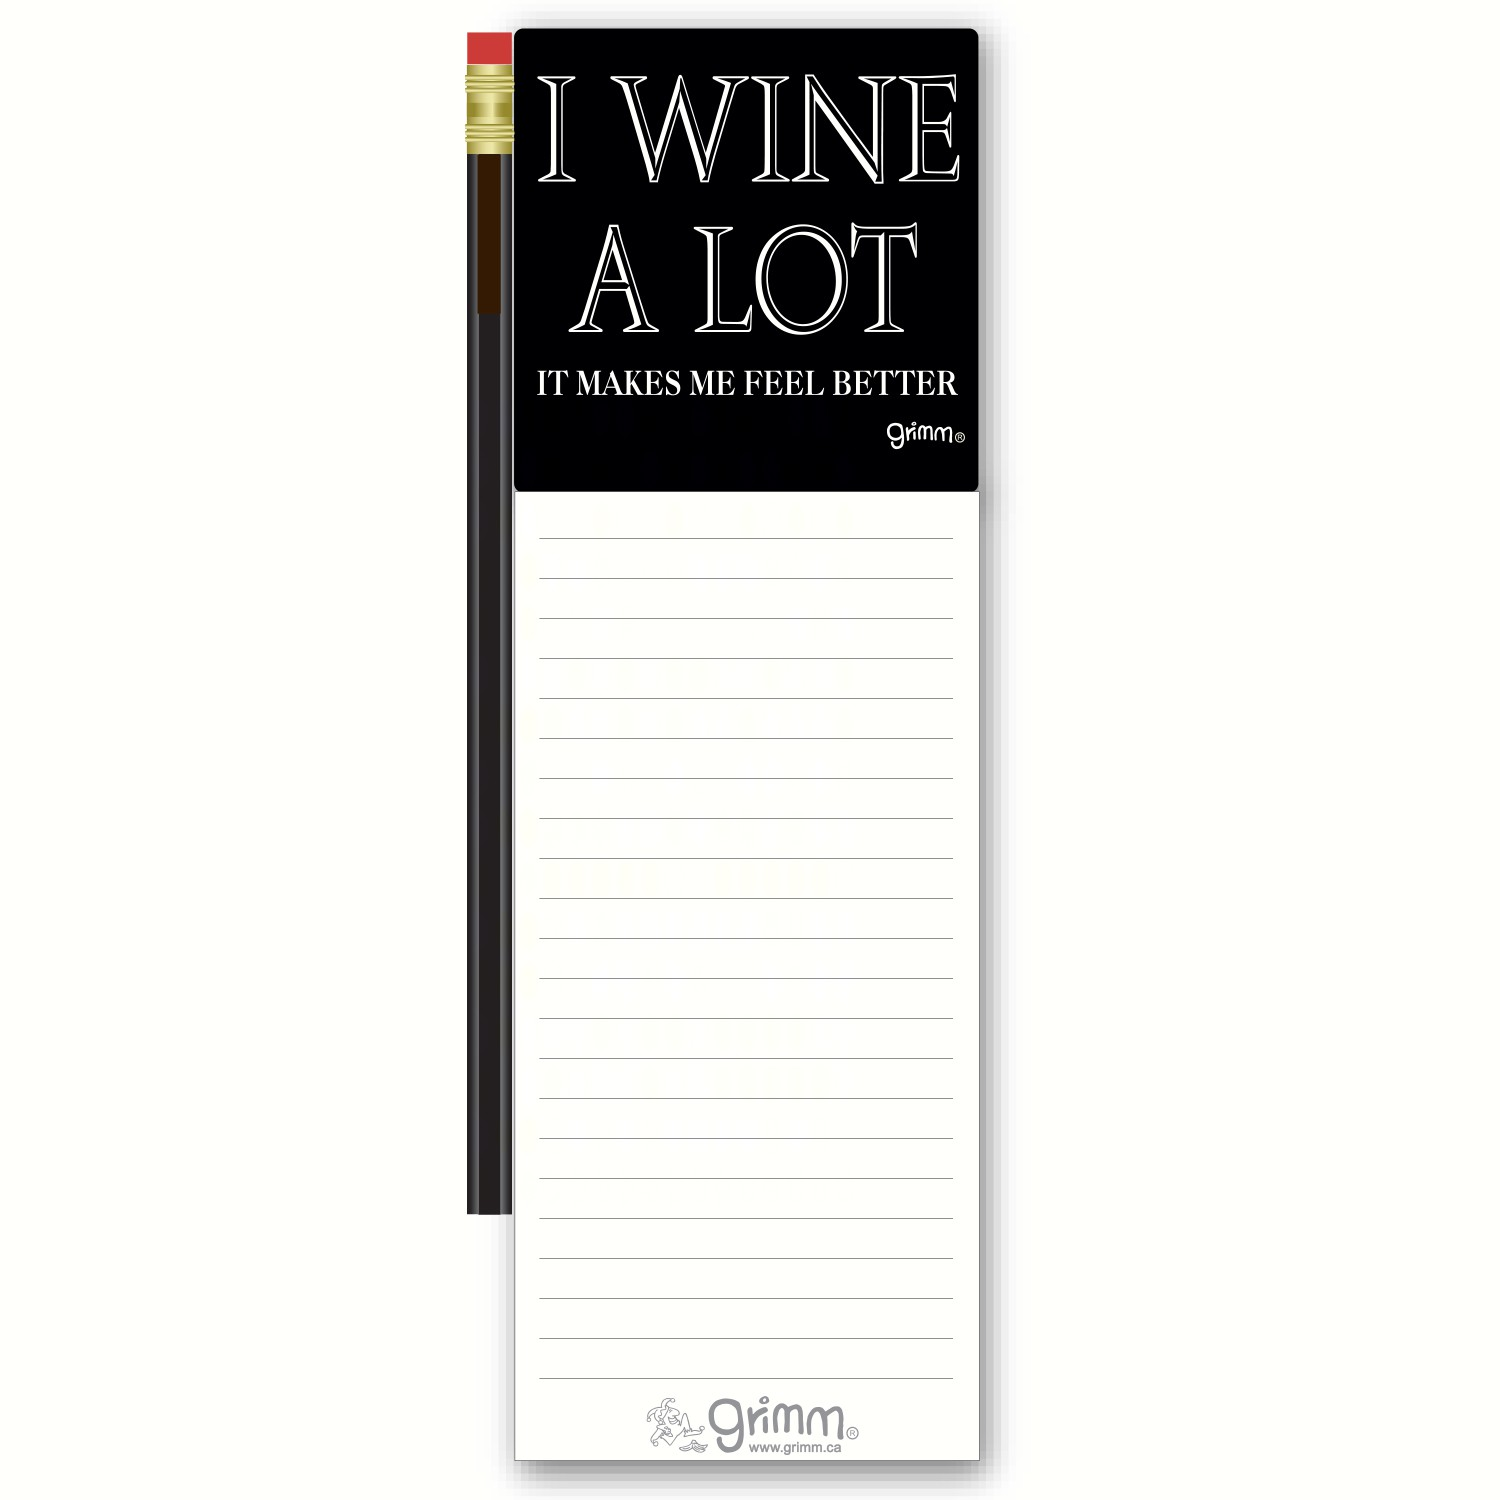 Magnetic Note Pad with Pencil: I Wine Alot It Makes Me Feel Better